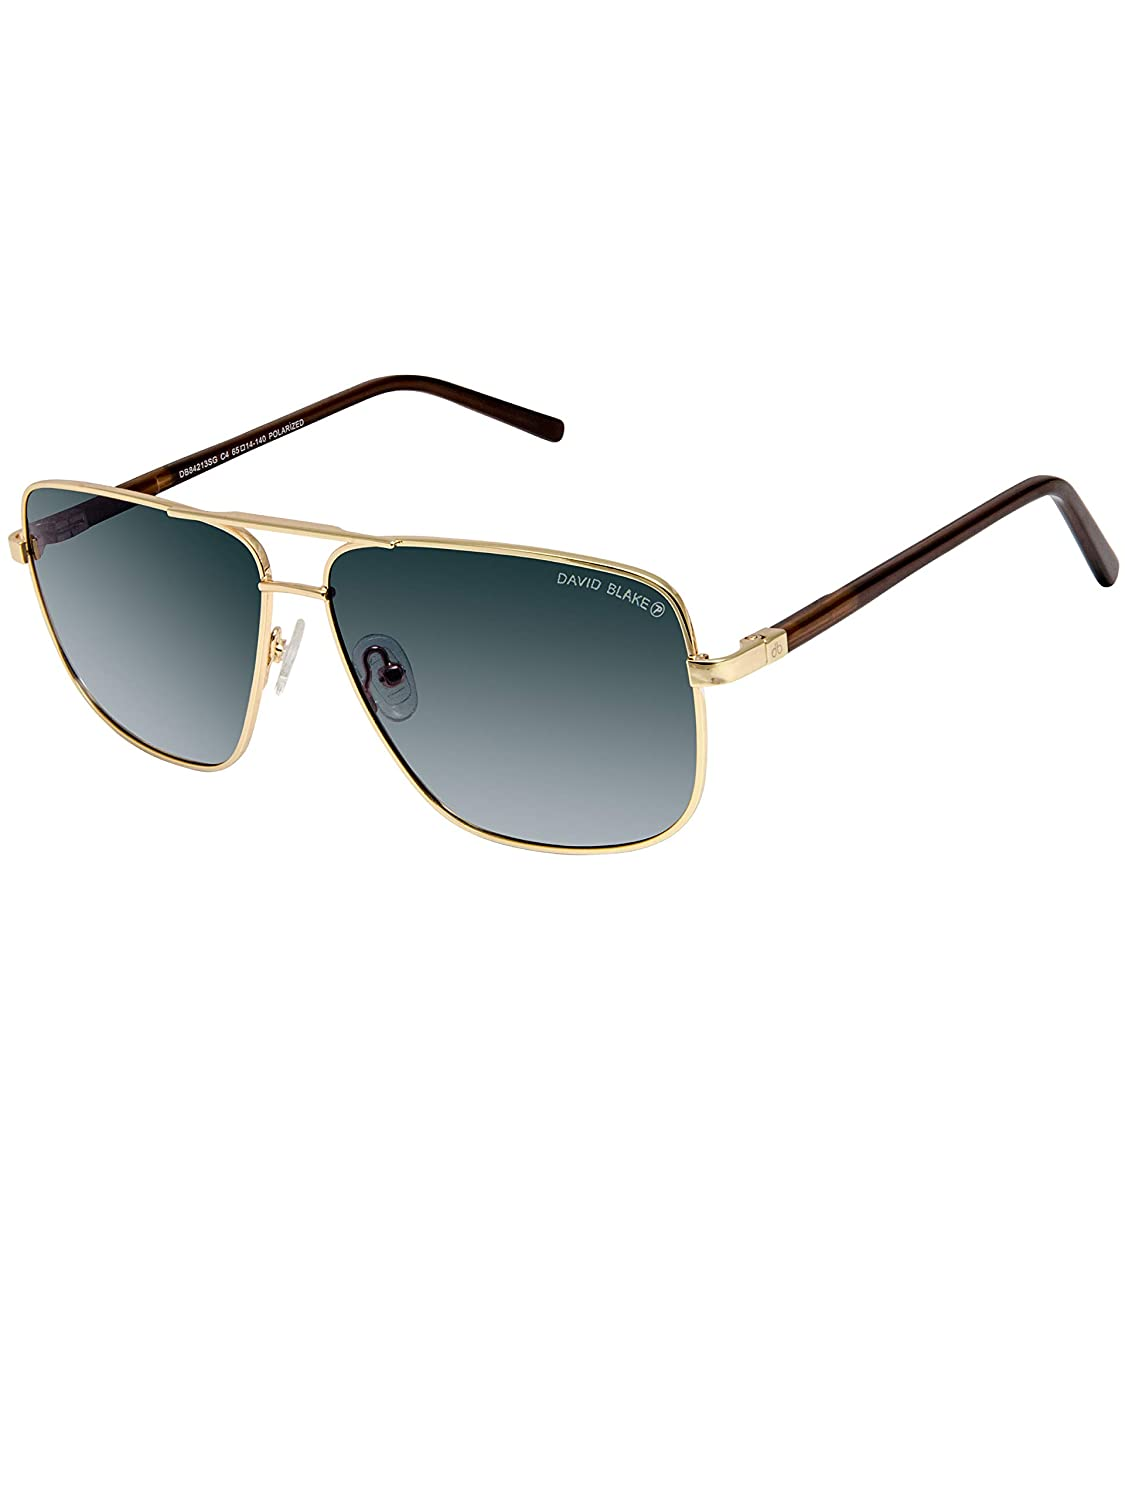 3a5a8970649 David Blake Wayfarer Gradient Polarised UV Protected Green Sunglass for Men  and Women  Amazon.in  Clothing   Accessories